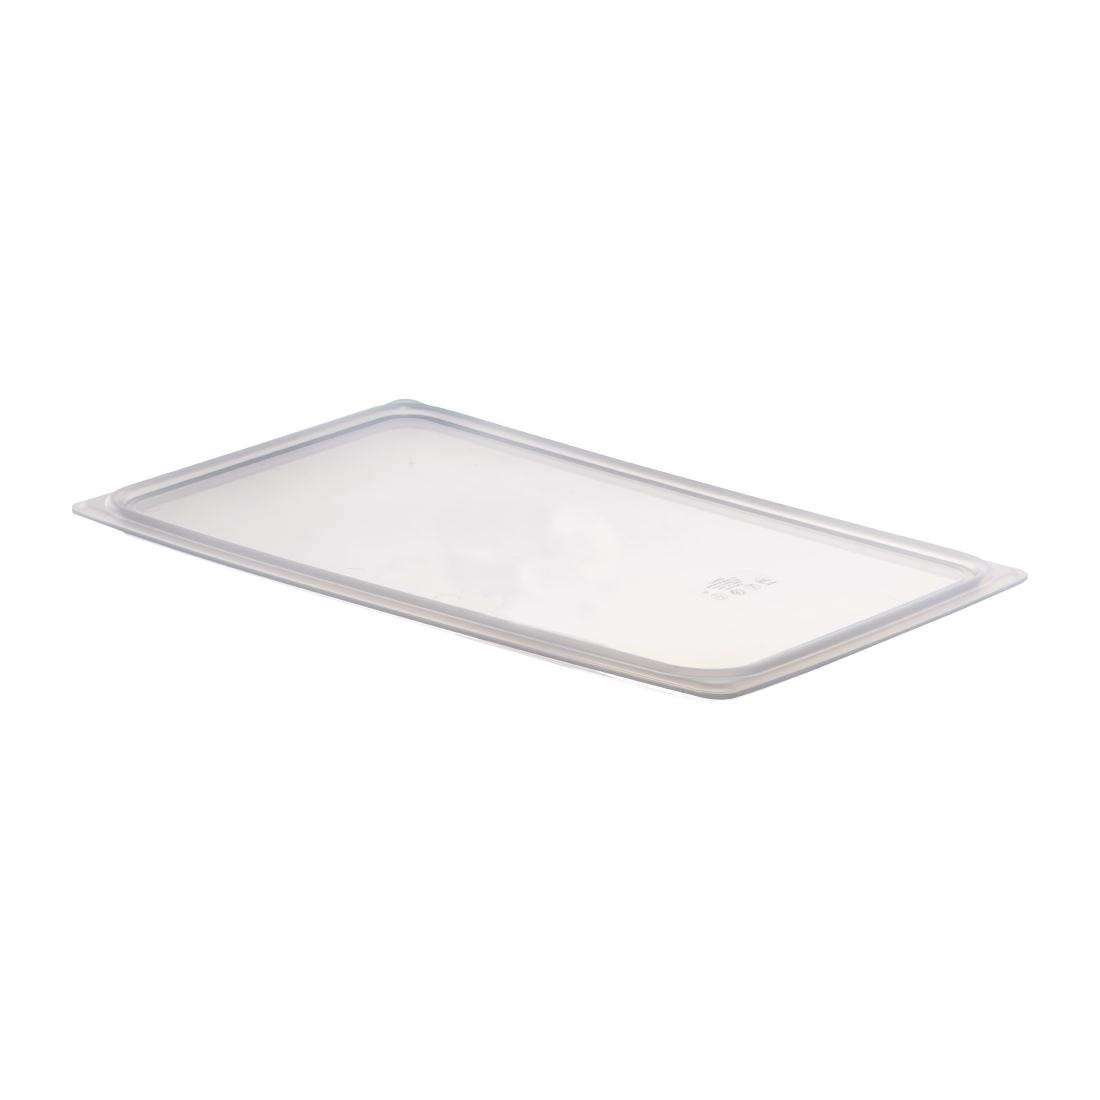 Cambro Gastronorm Pan 1/1 Soft Seal Lid